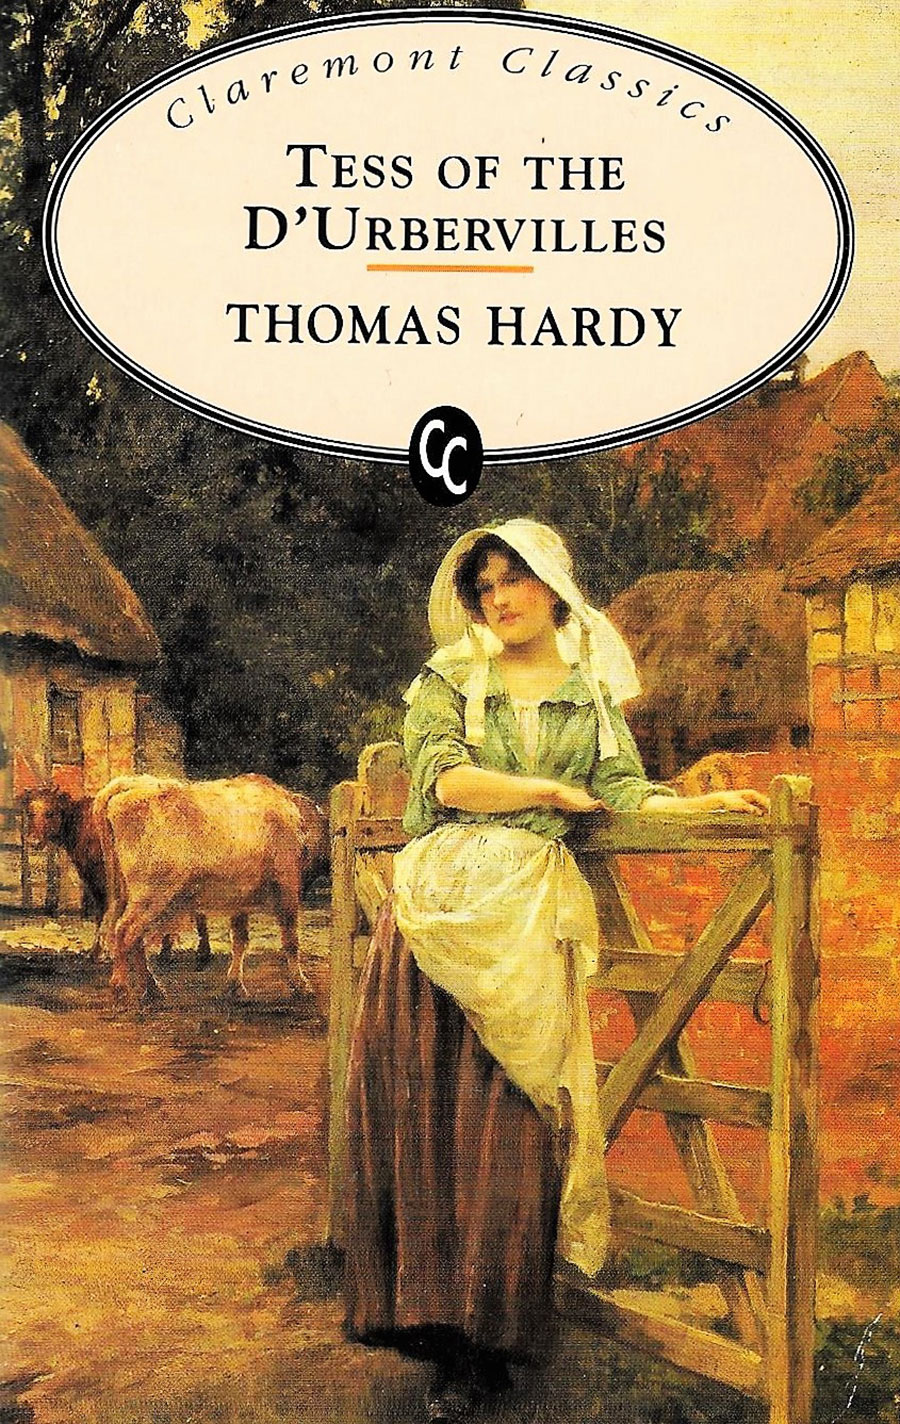 an analysis of the novel tess of the durbervilles by thomas hardy Tess of the d'urbervilles by thomas hardy my rating: 2 of 5 stars this classic novel should subtitled, in my opinion, as a tale of three bad men it's not entirely.